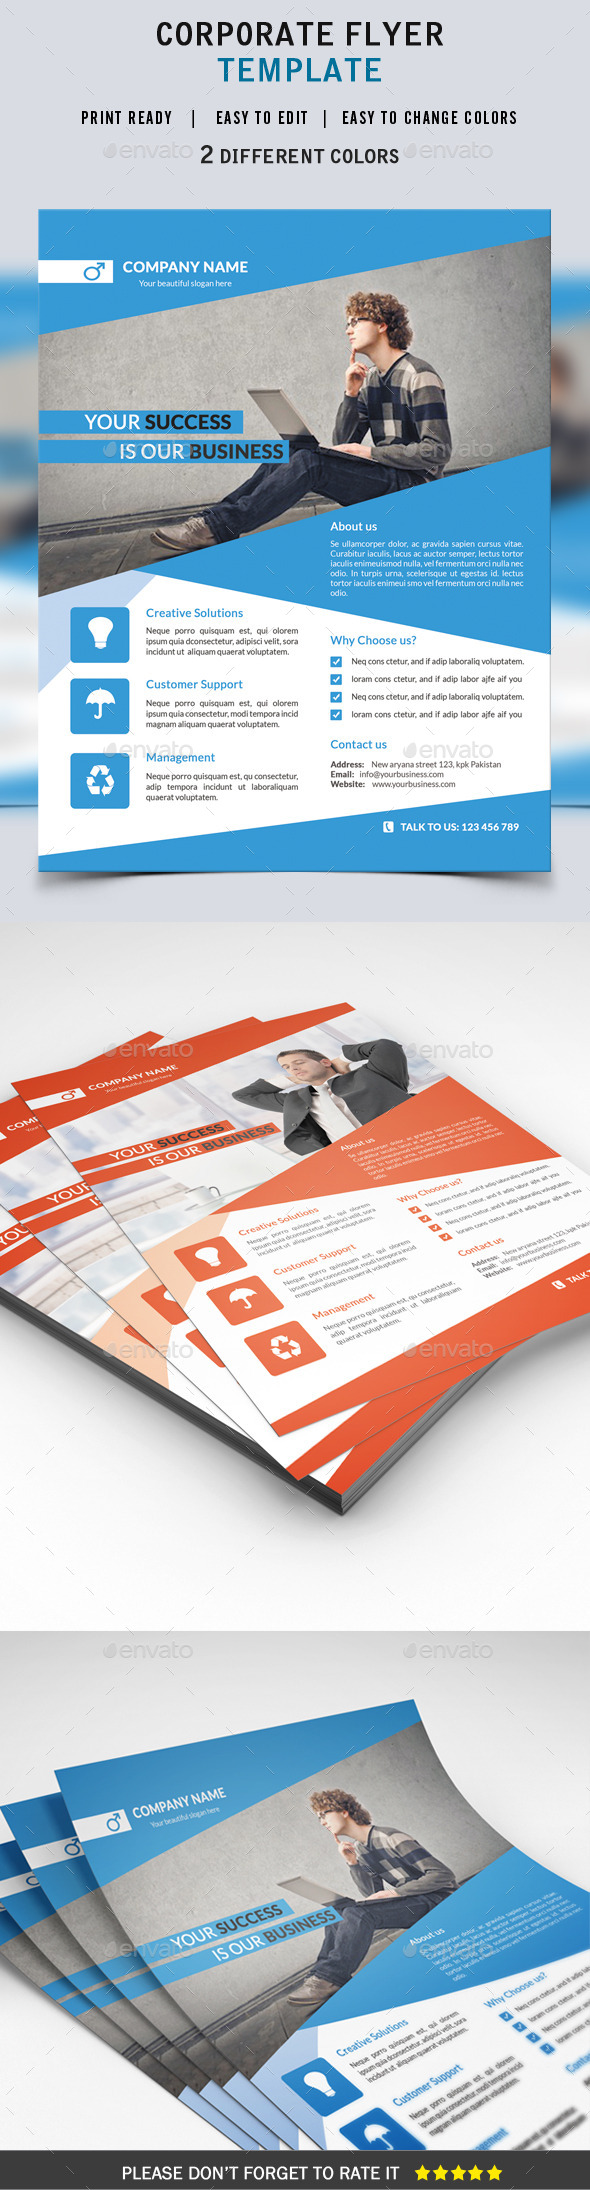 GraphicRiver Corporate Flyer Template 9136540